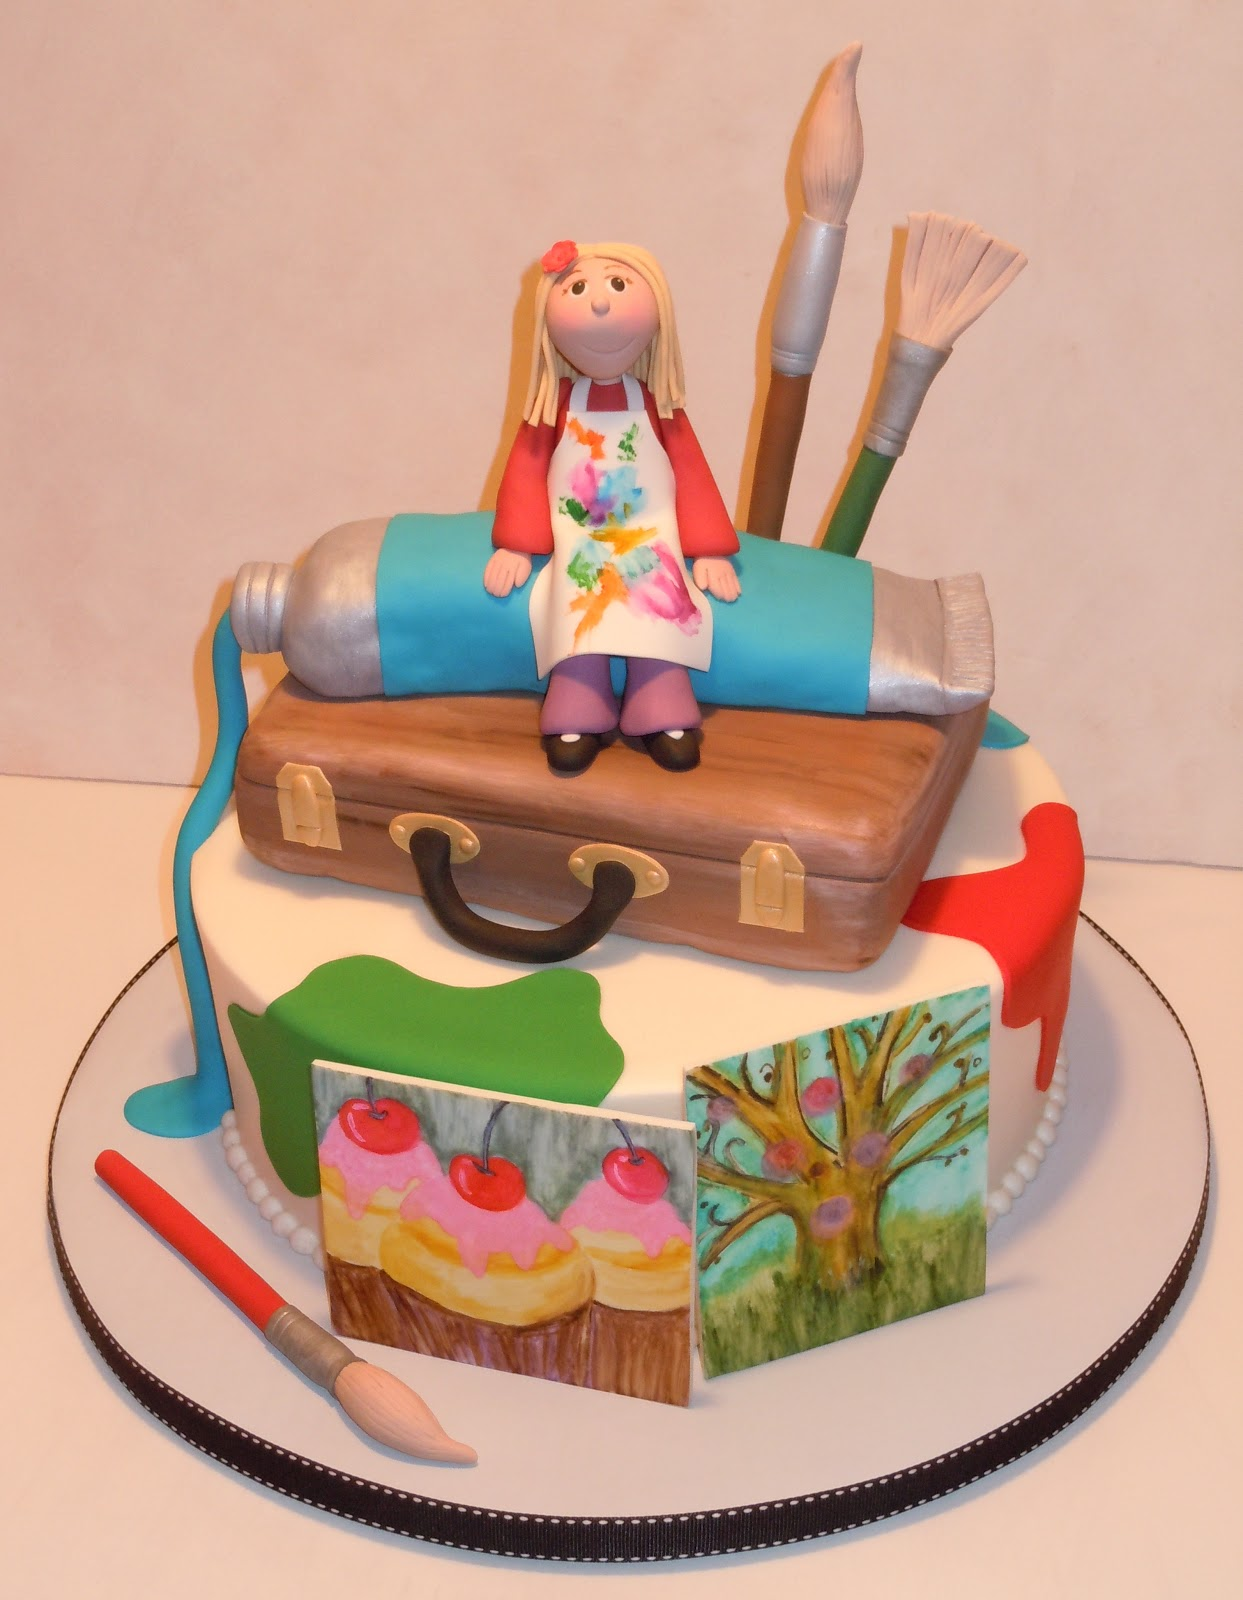 Art Gallery Birthday Cake : Kids Birthday cakes on Pinterest Rainbow Cakes, Artist ...